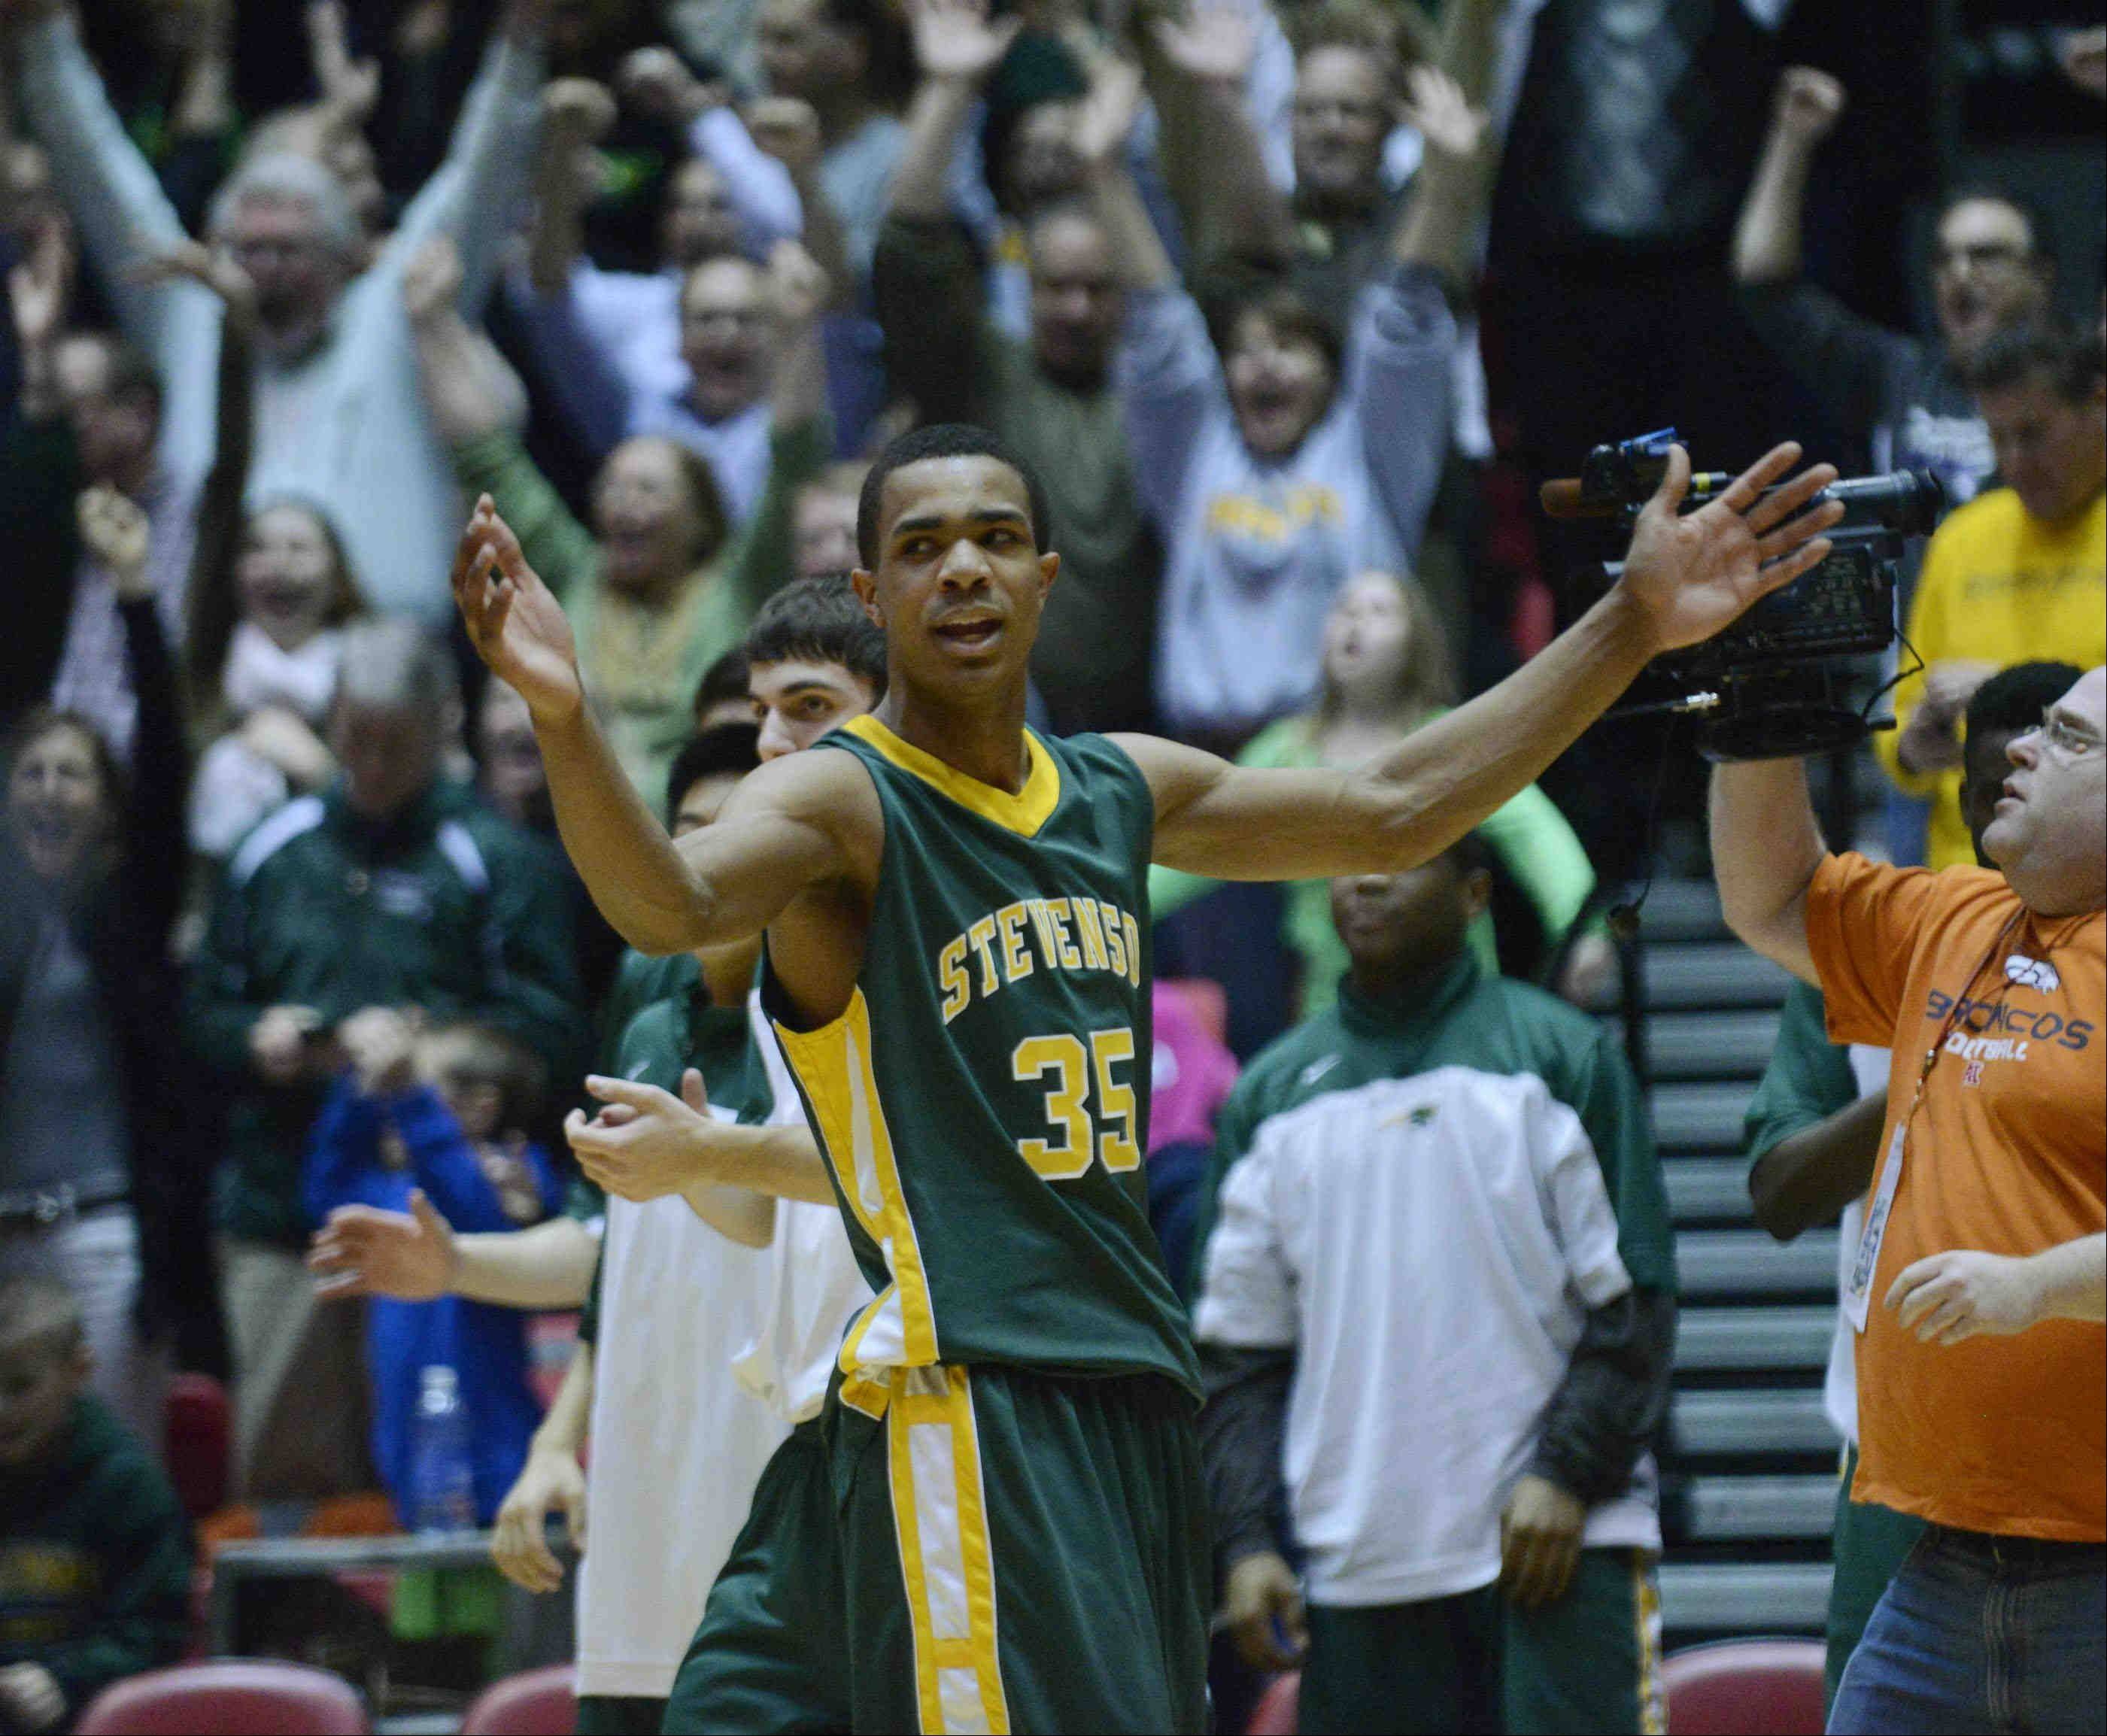 Stevenson's Connor Cashaw reacts at the buzzer.